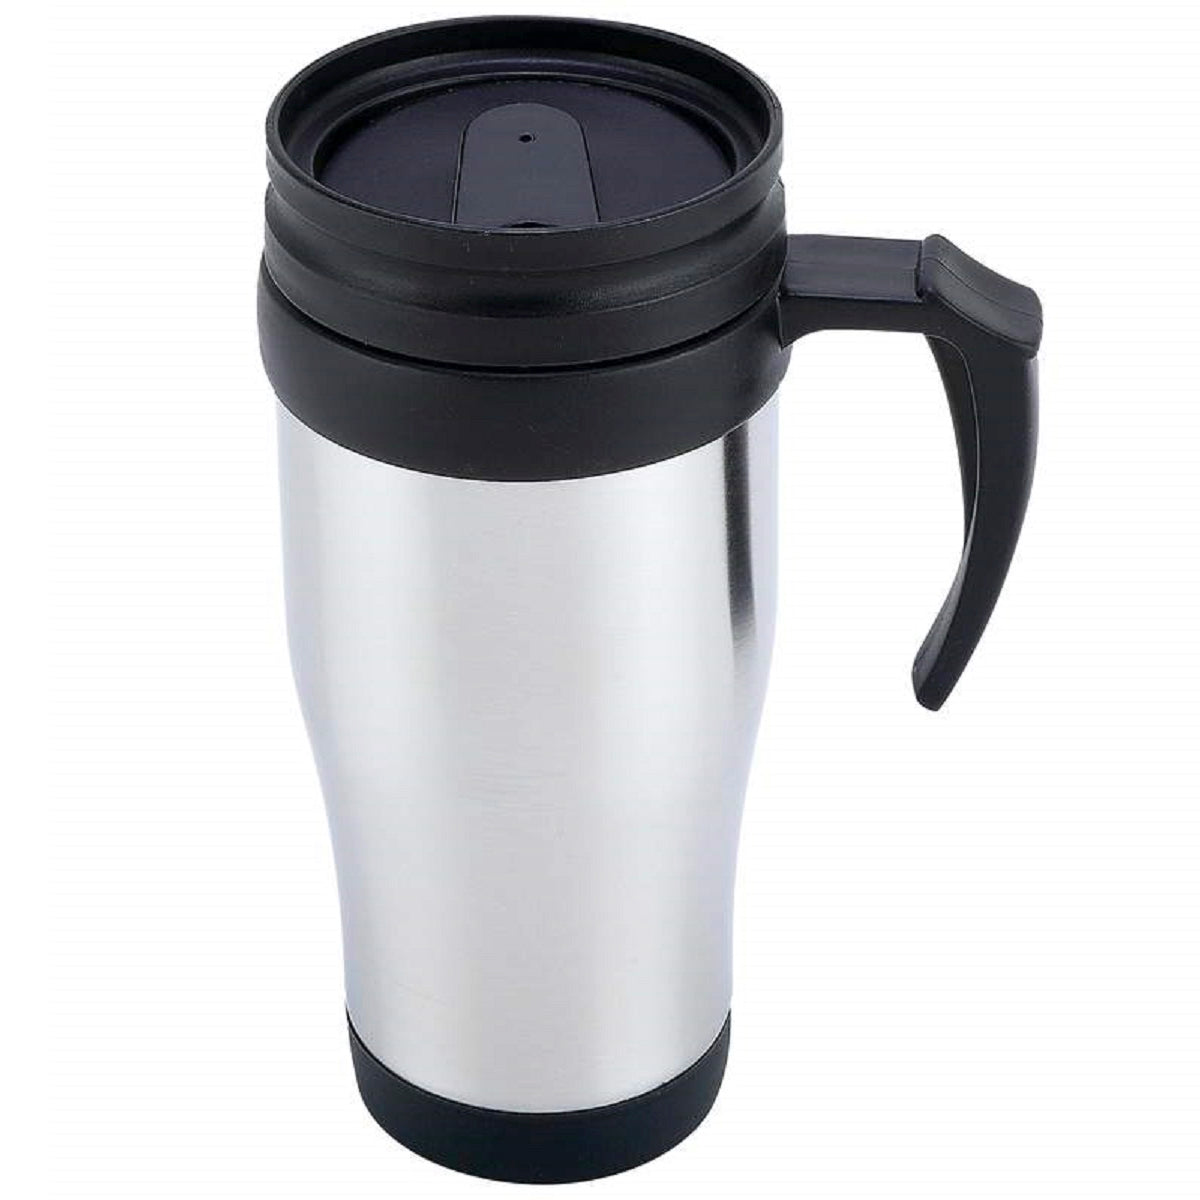 Stainless Steel Lined Travel Mug with Handle, 16oz